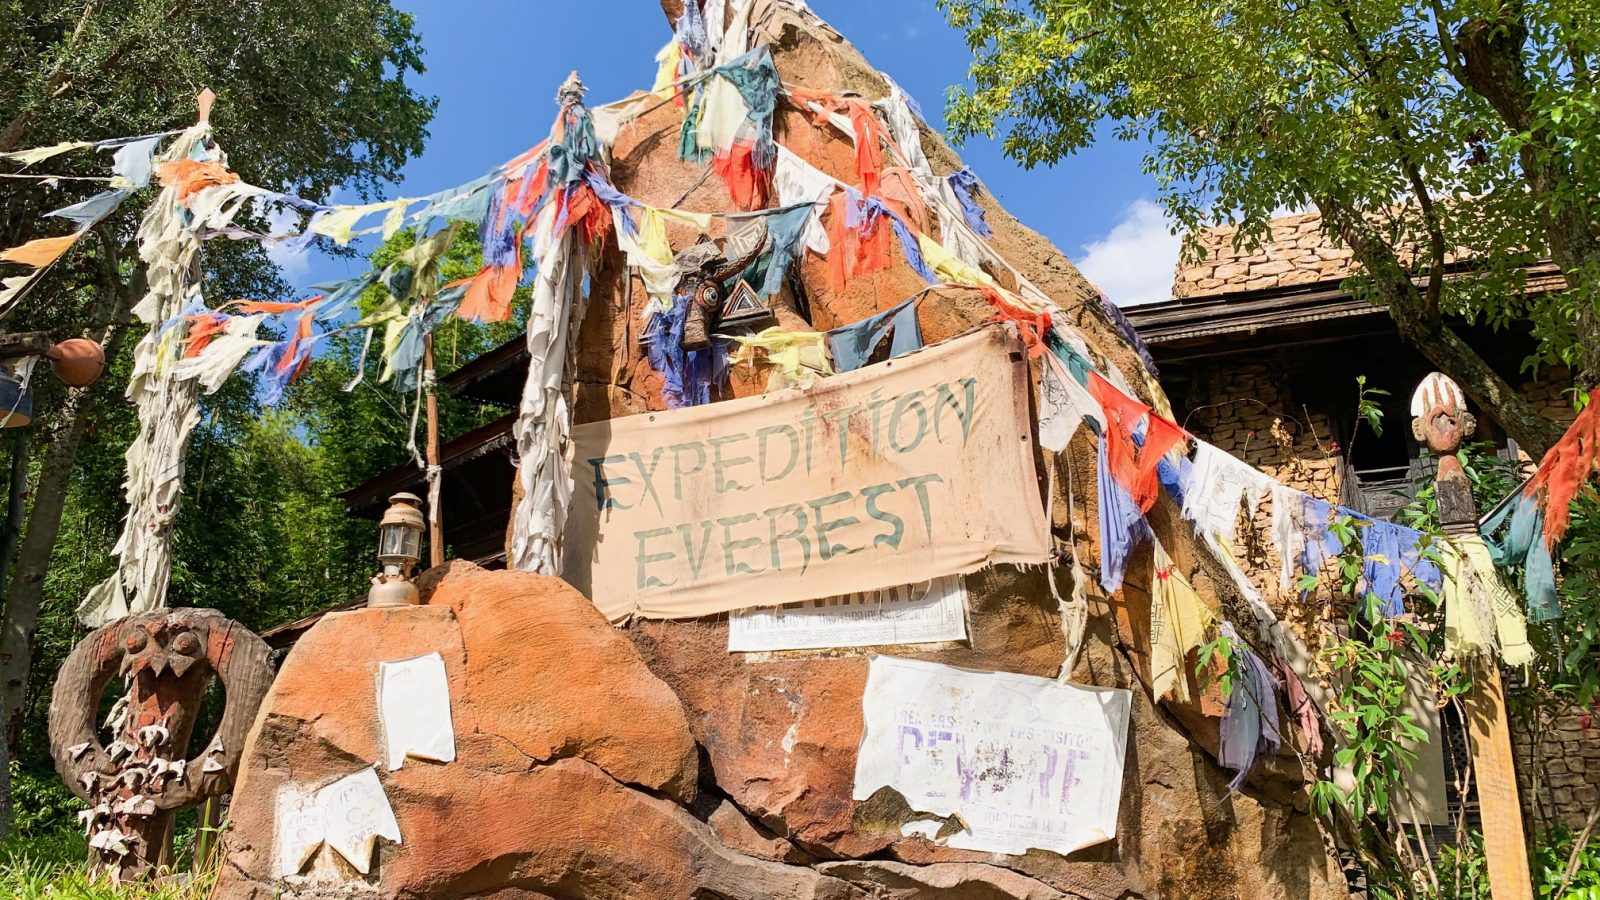 battered expedition everest sign surrounded by torn cloth pieces